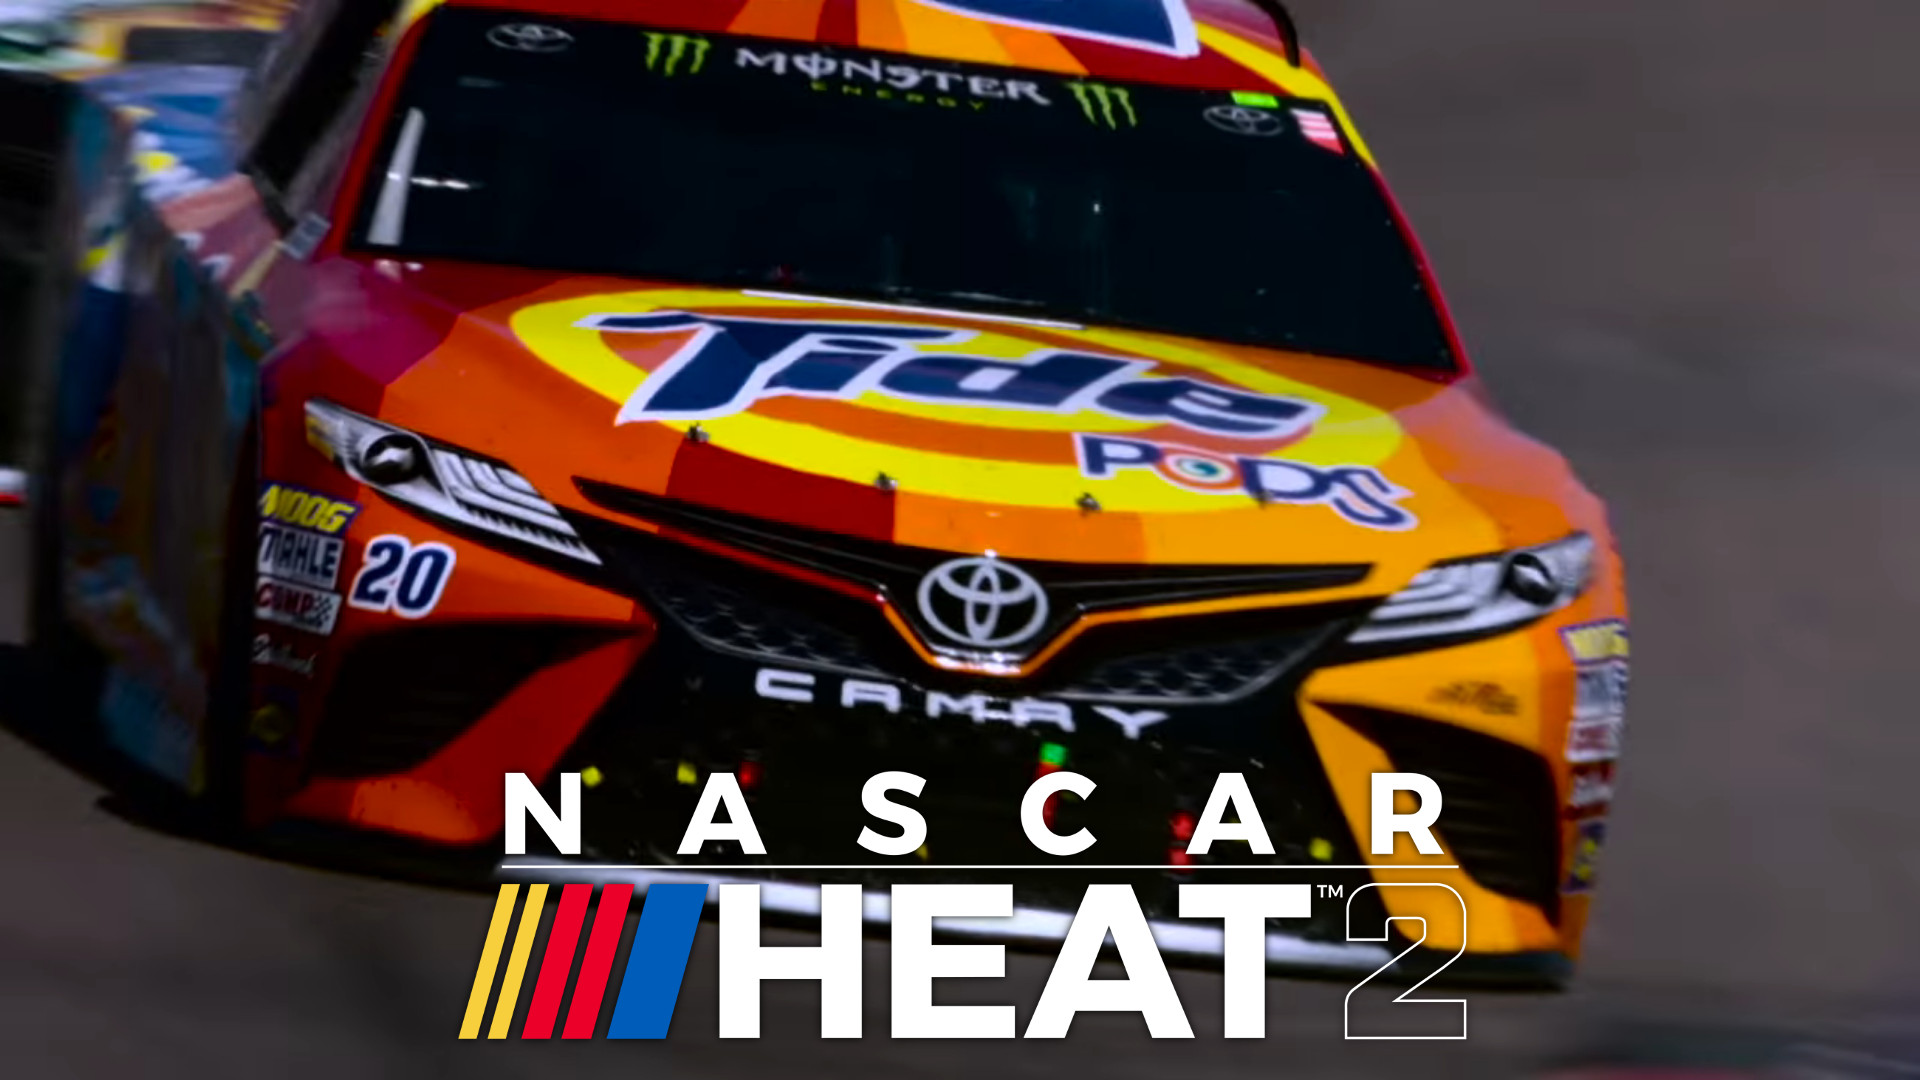 Download Nascar Heat 2 Hd Wallpapers Read Games Review Play